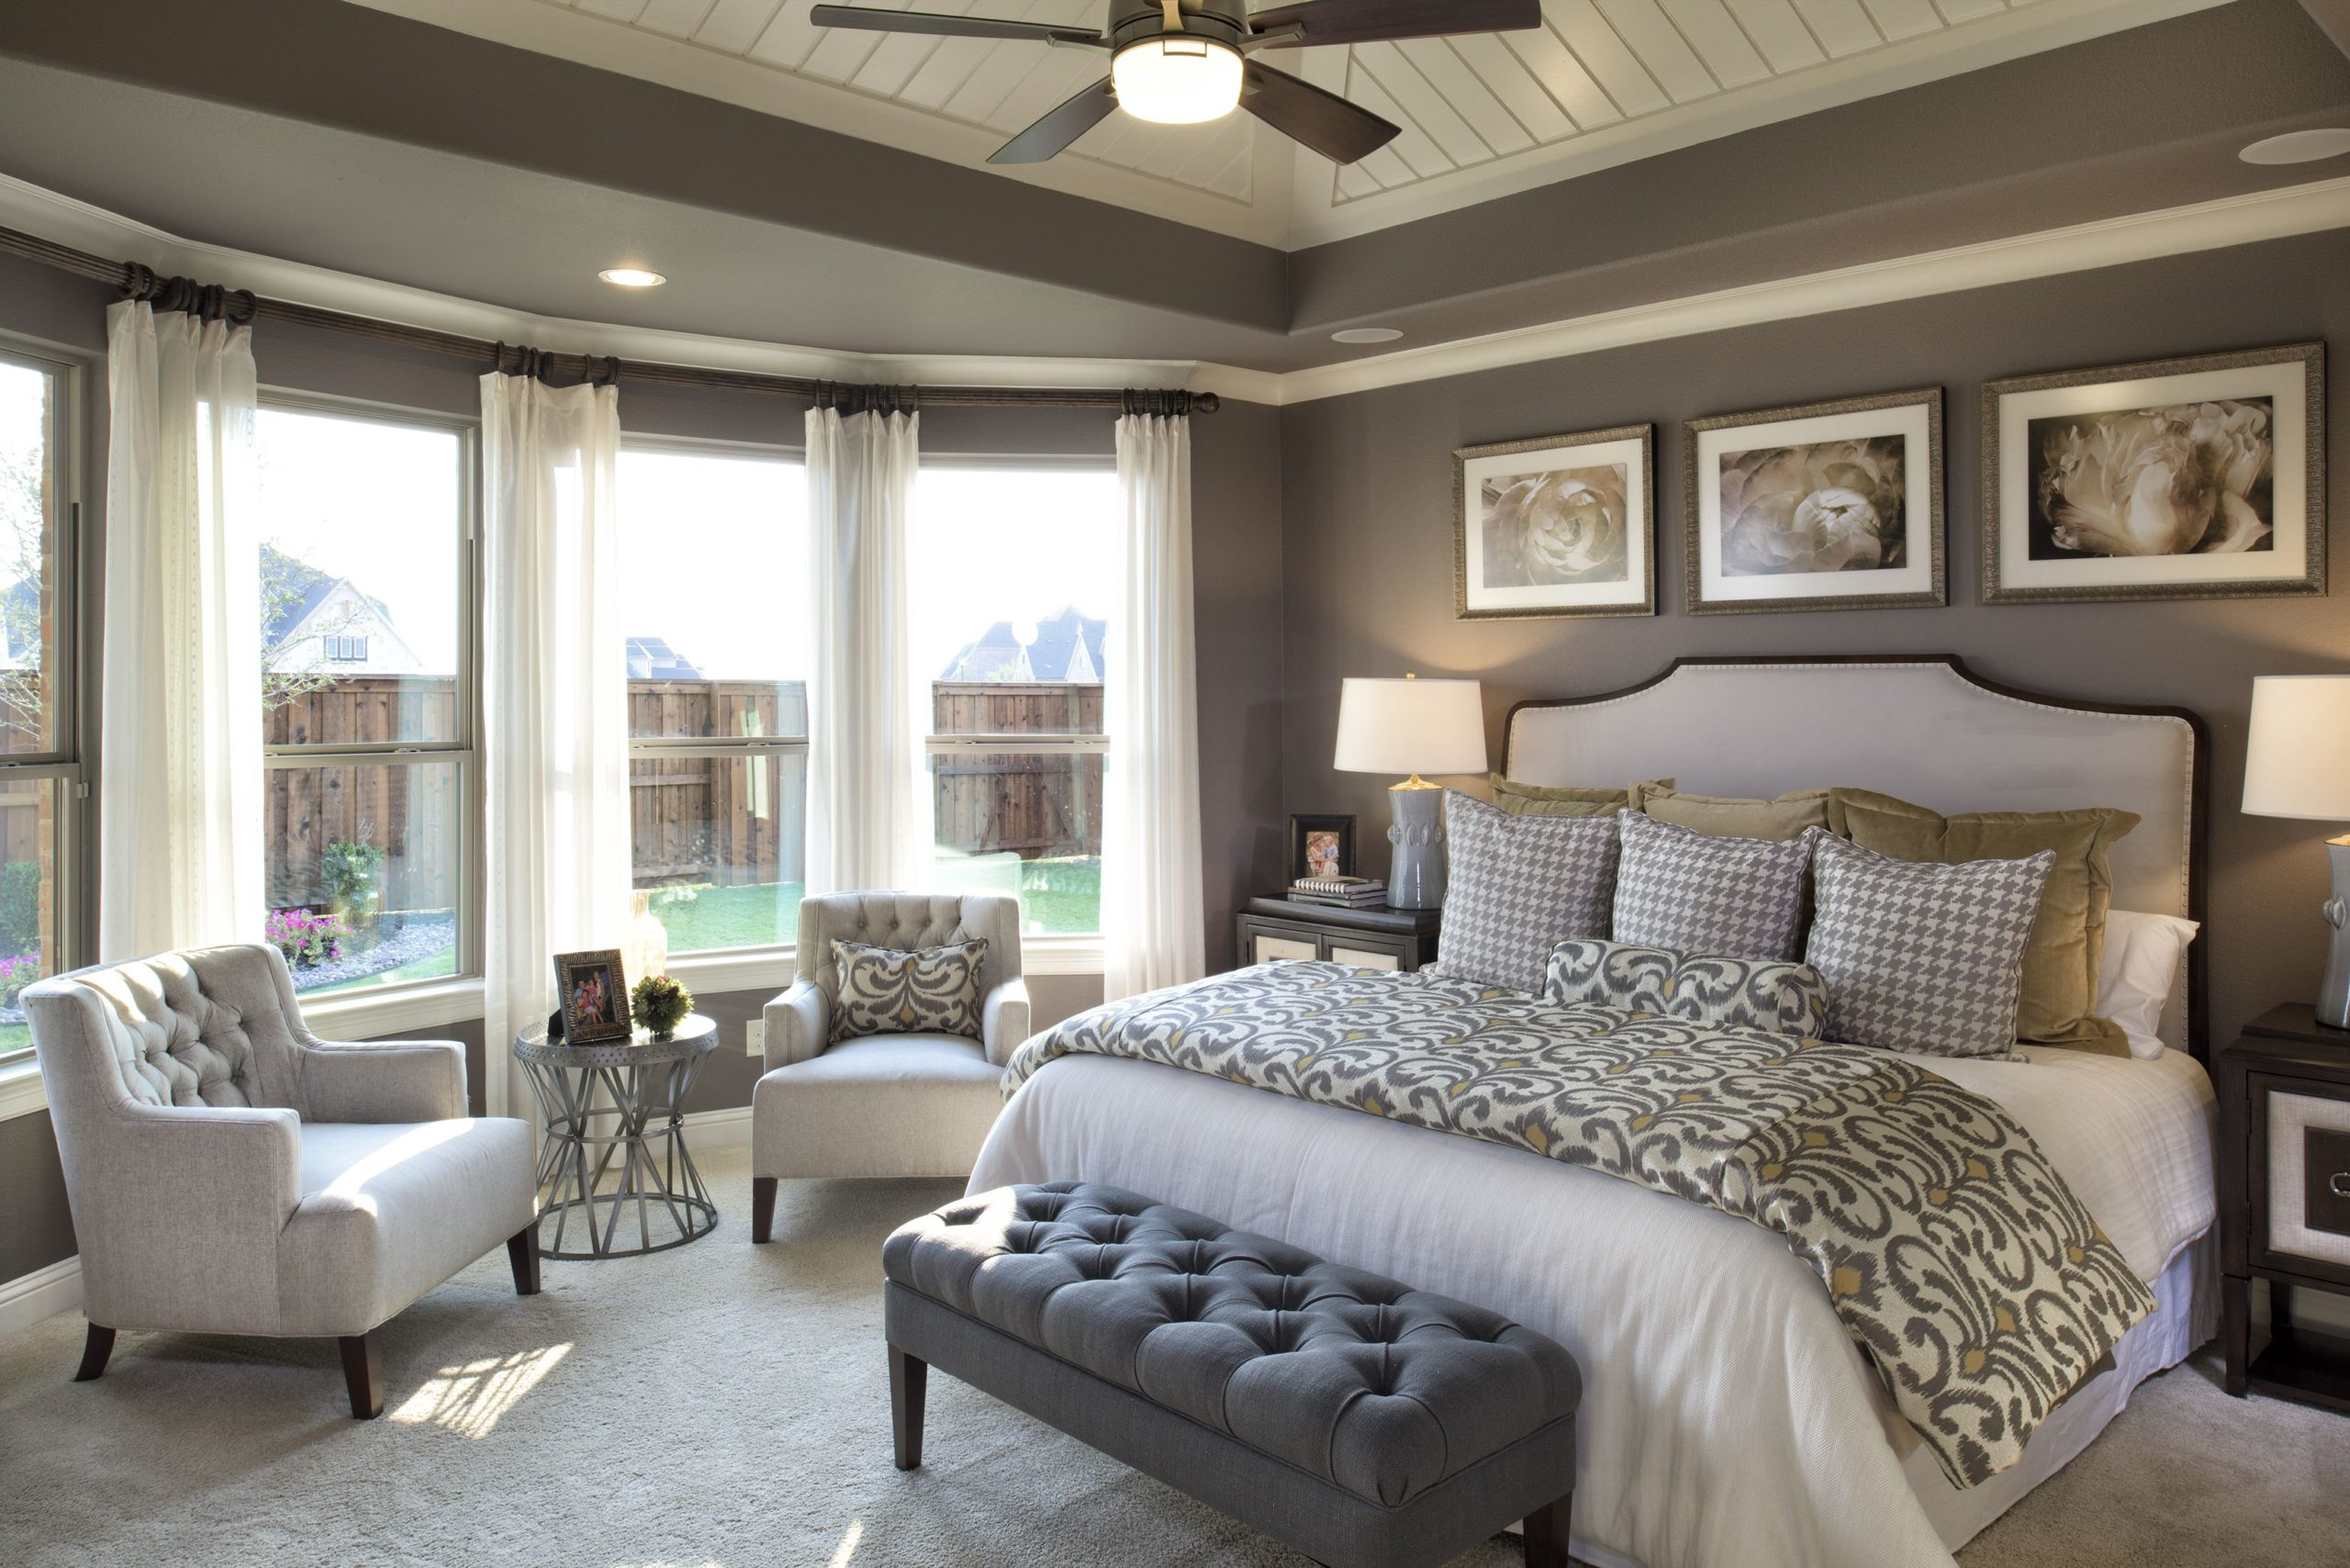 3 Great Master Suite Renovation Tips